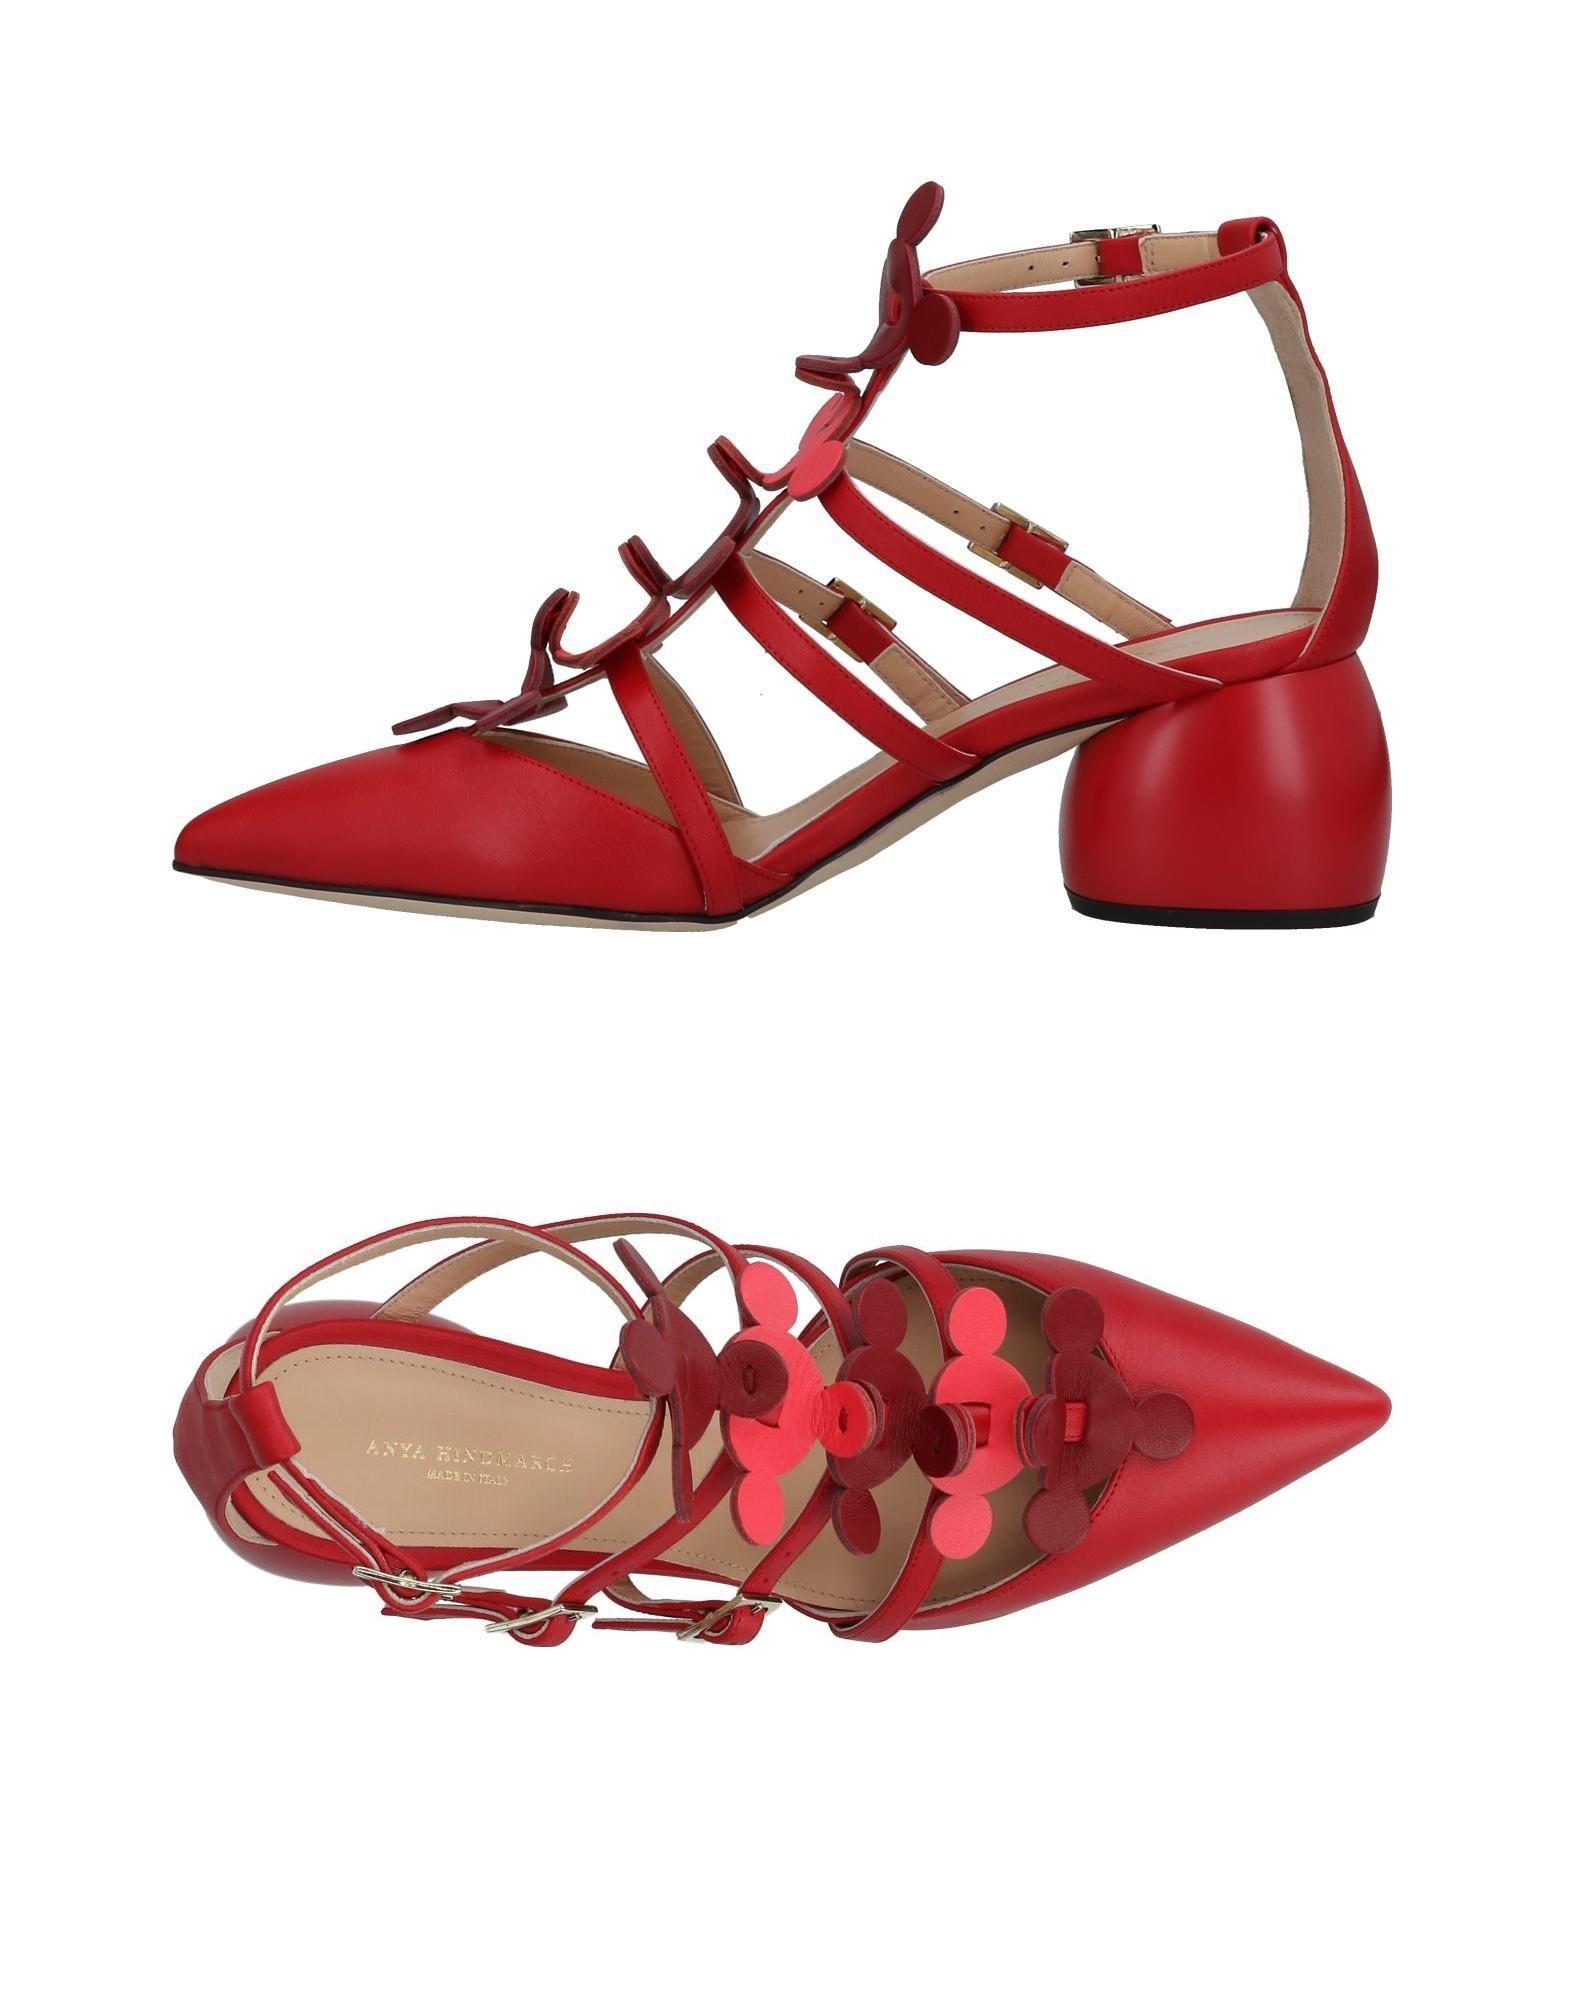 FOOTWEAR - Courts Anya Hindmarch e6PONjEP